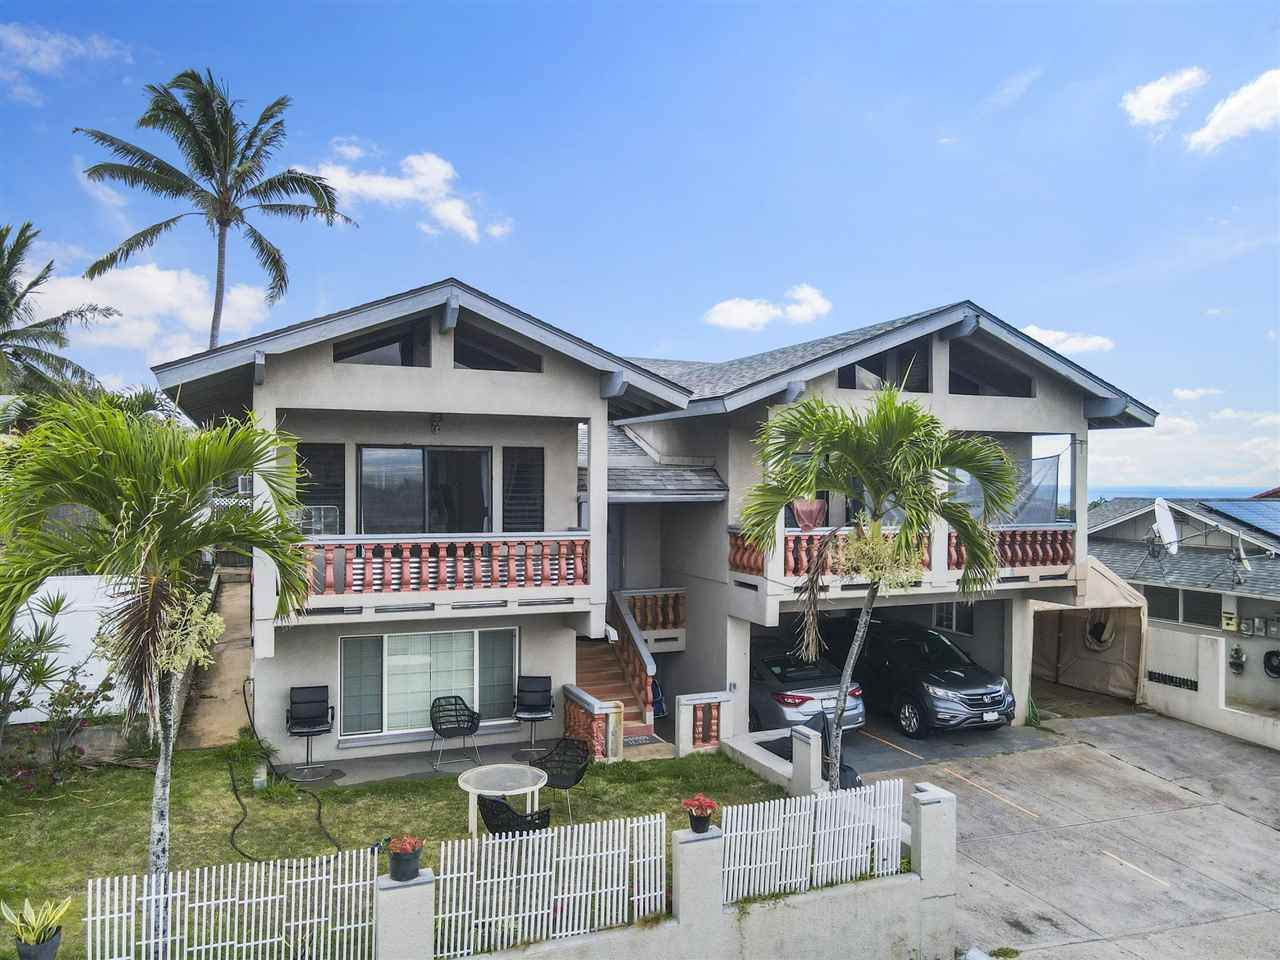 808 Makiki St - Photo 1